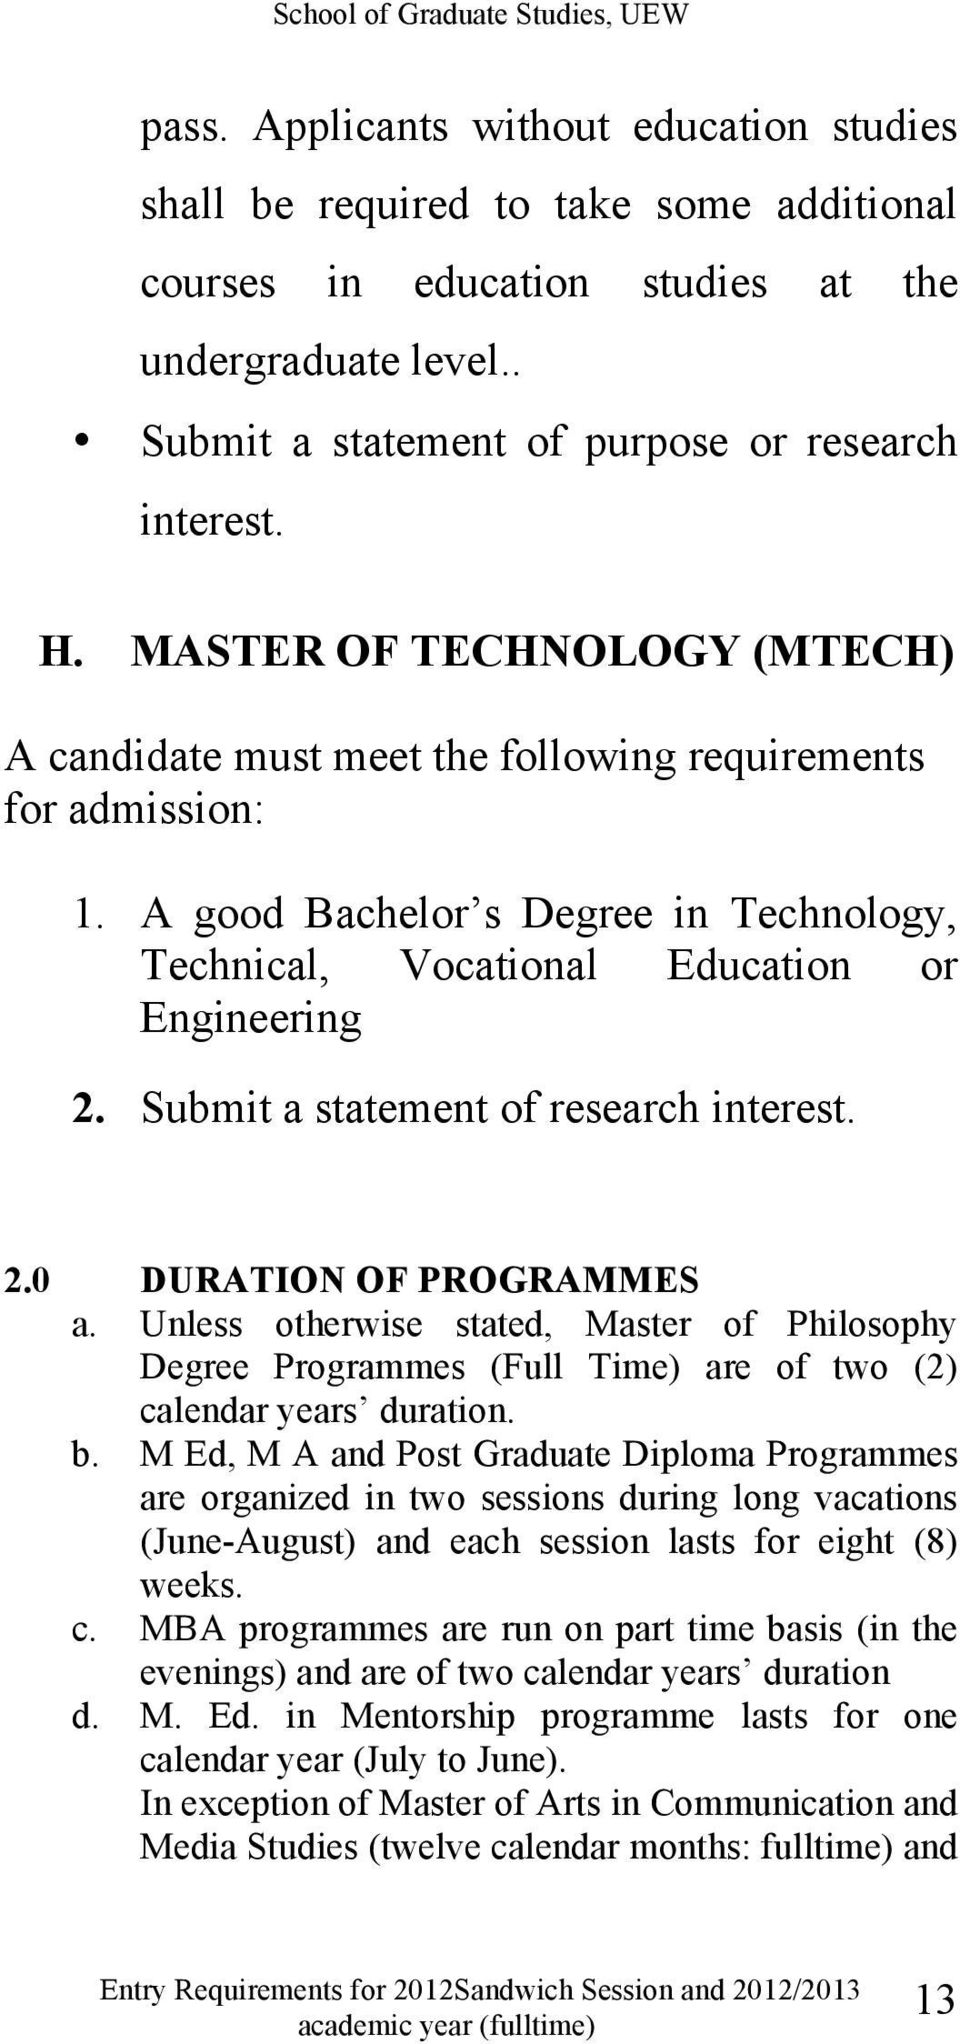 Submit a statement of research interest. 2.0 DURATION OF PROGRAMMES a. Unless otherwise stated, Master of Philosophy Degree Programmes (Full Time) are of two (2) calendar years duration. b.